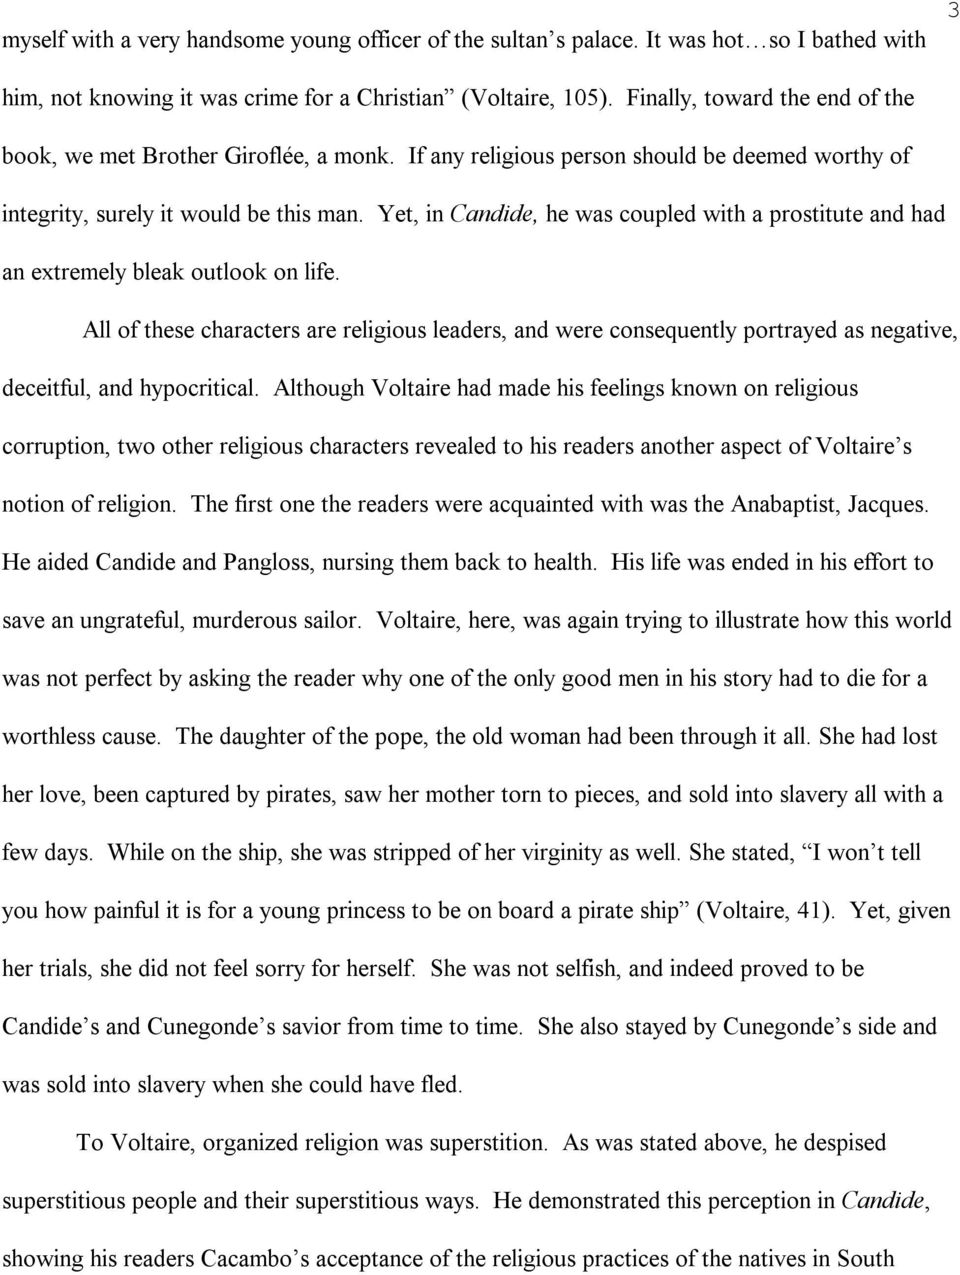 candide essay on religion